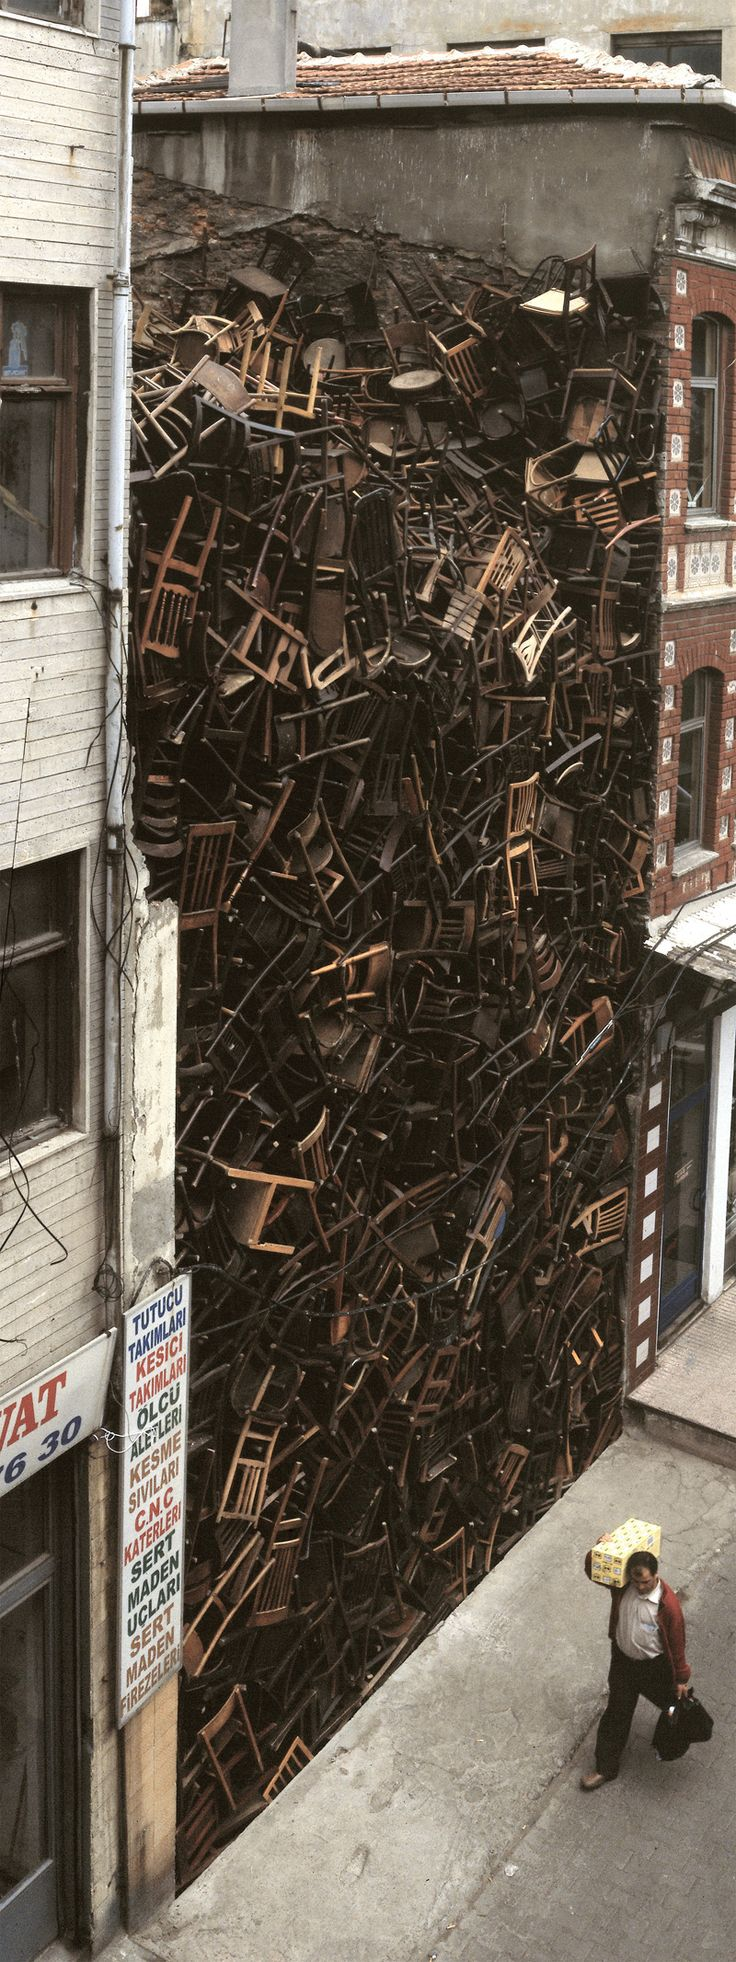 ▶▶▶ Doris Salcedo // 1,550 wooden chairs piled high between two buildings in central Istanbul.